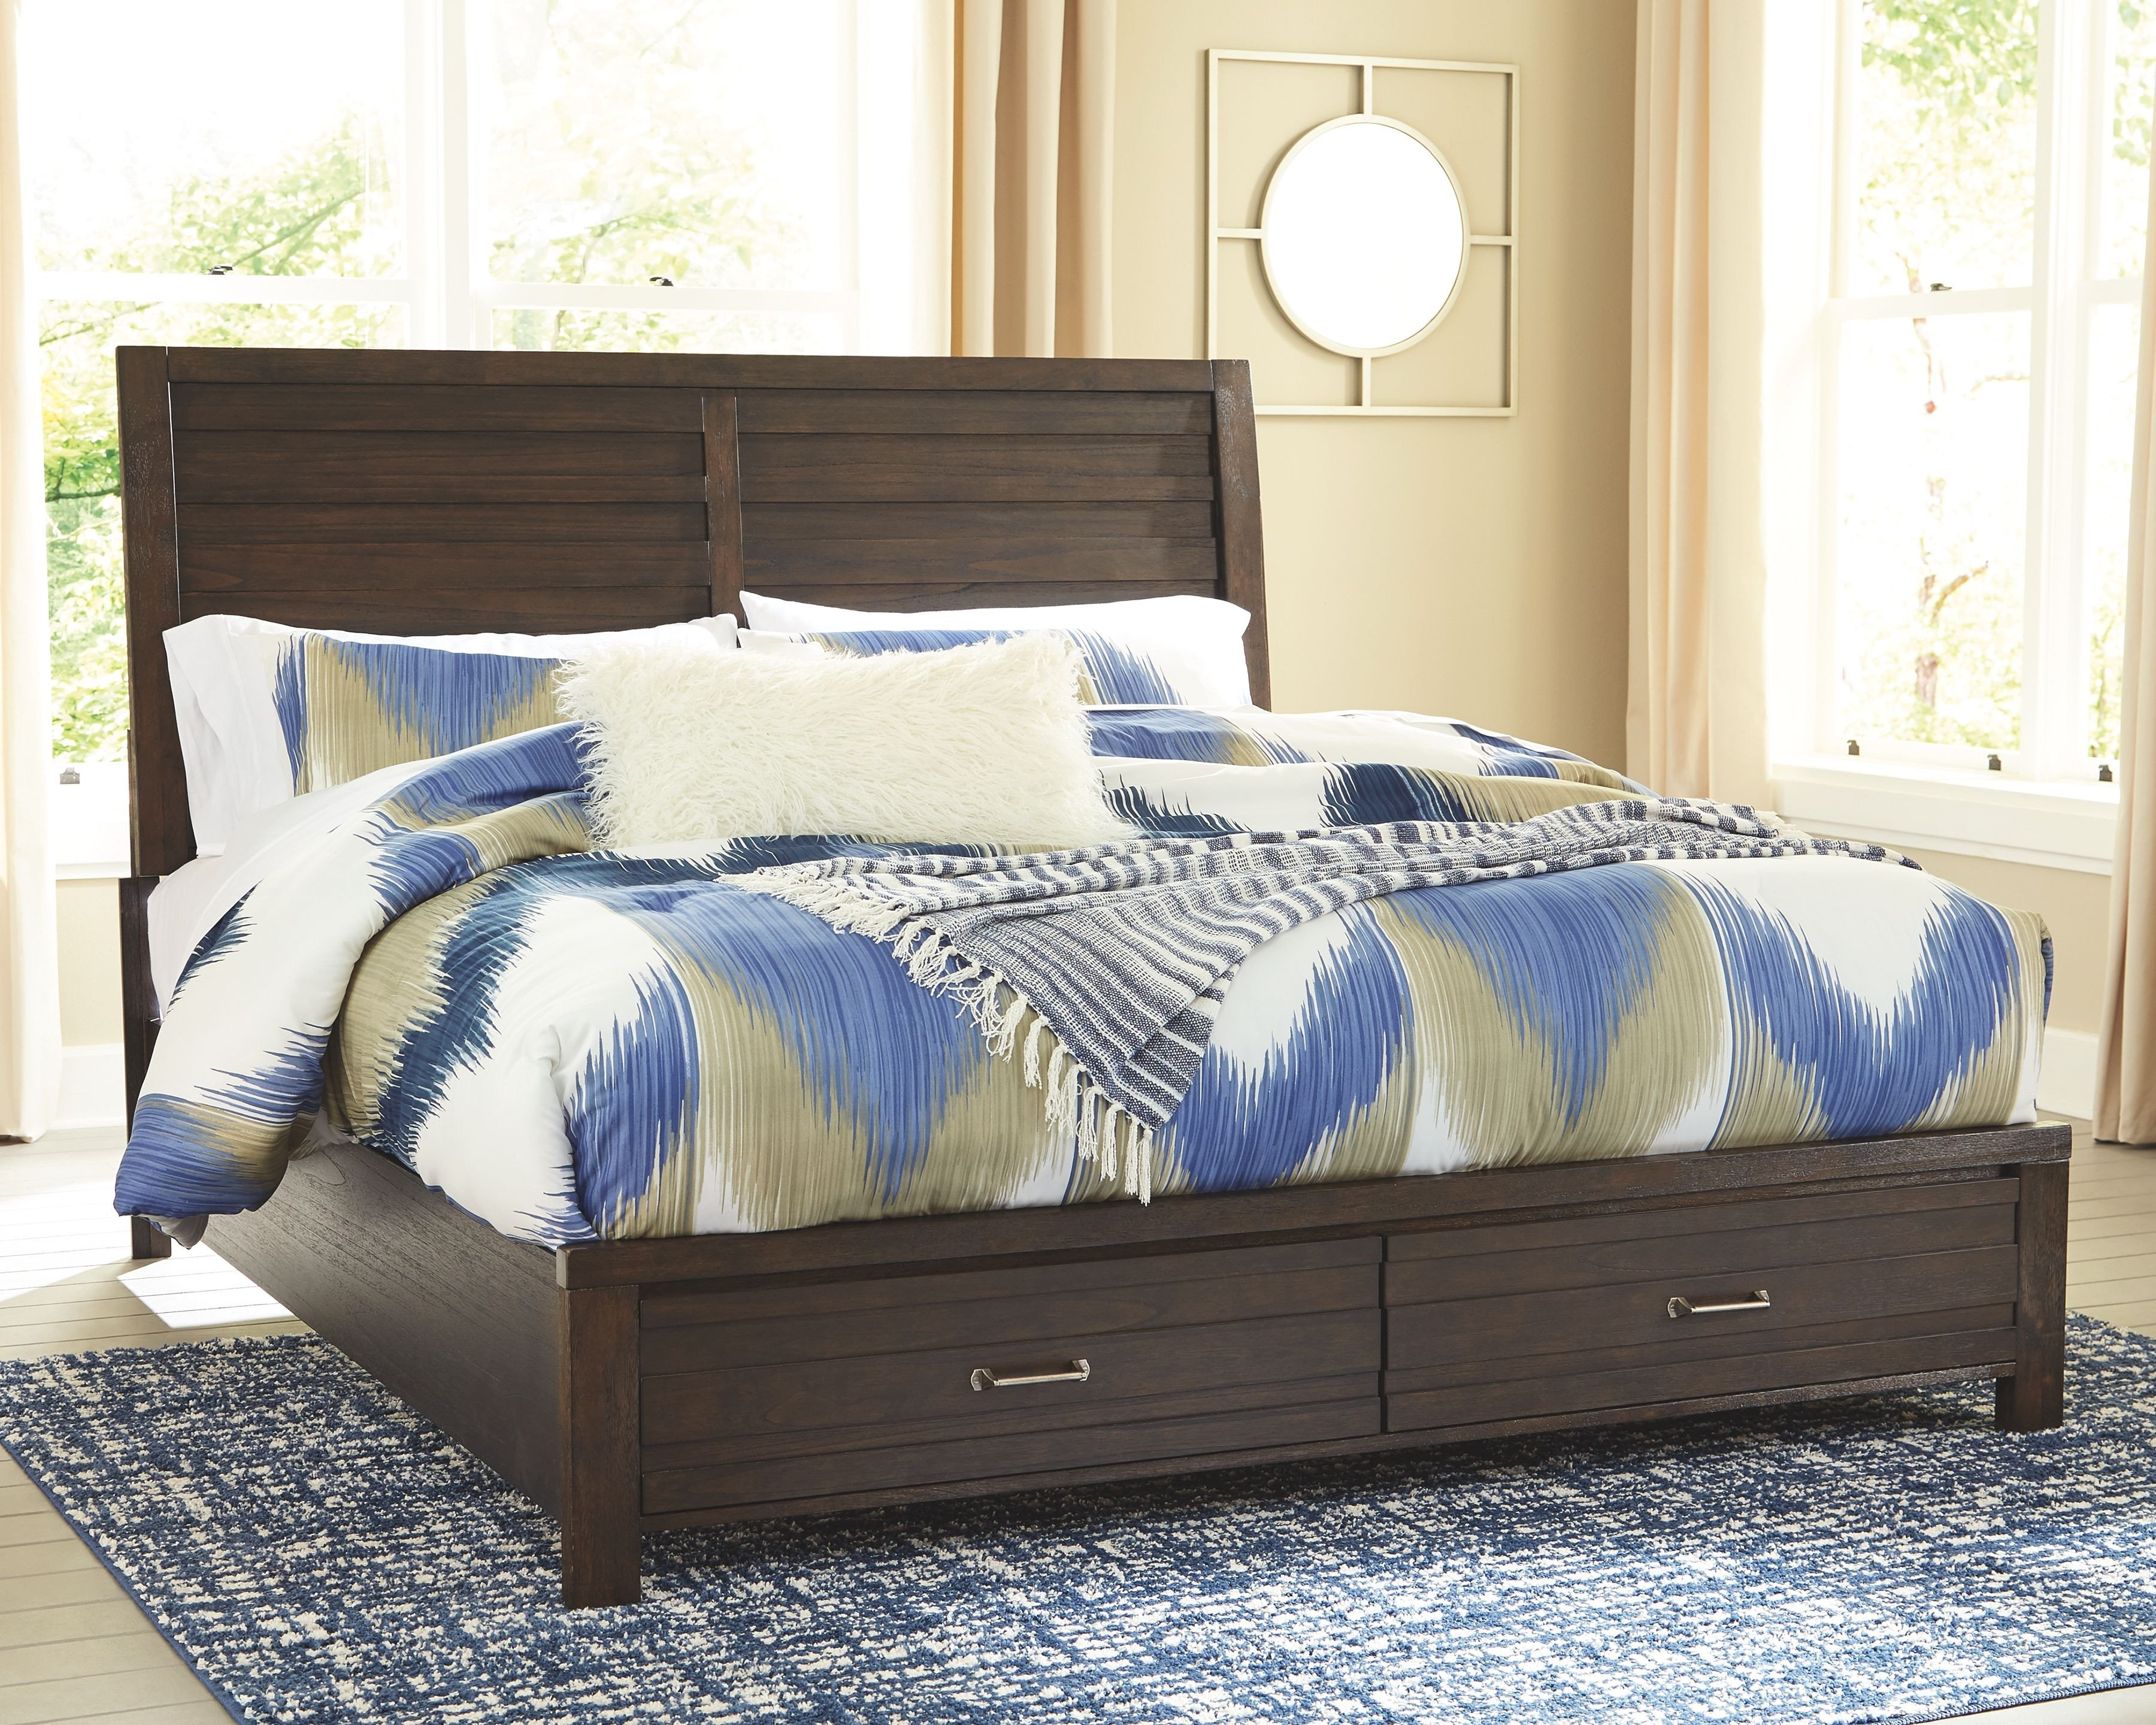 King Size Bedroom Ideas Lovely Darbry California King Panel Bed with Storage Brown